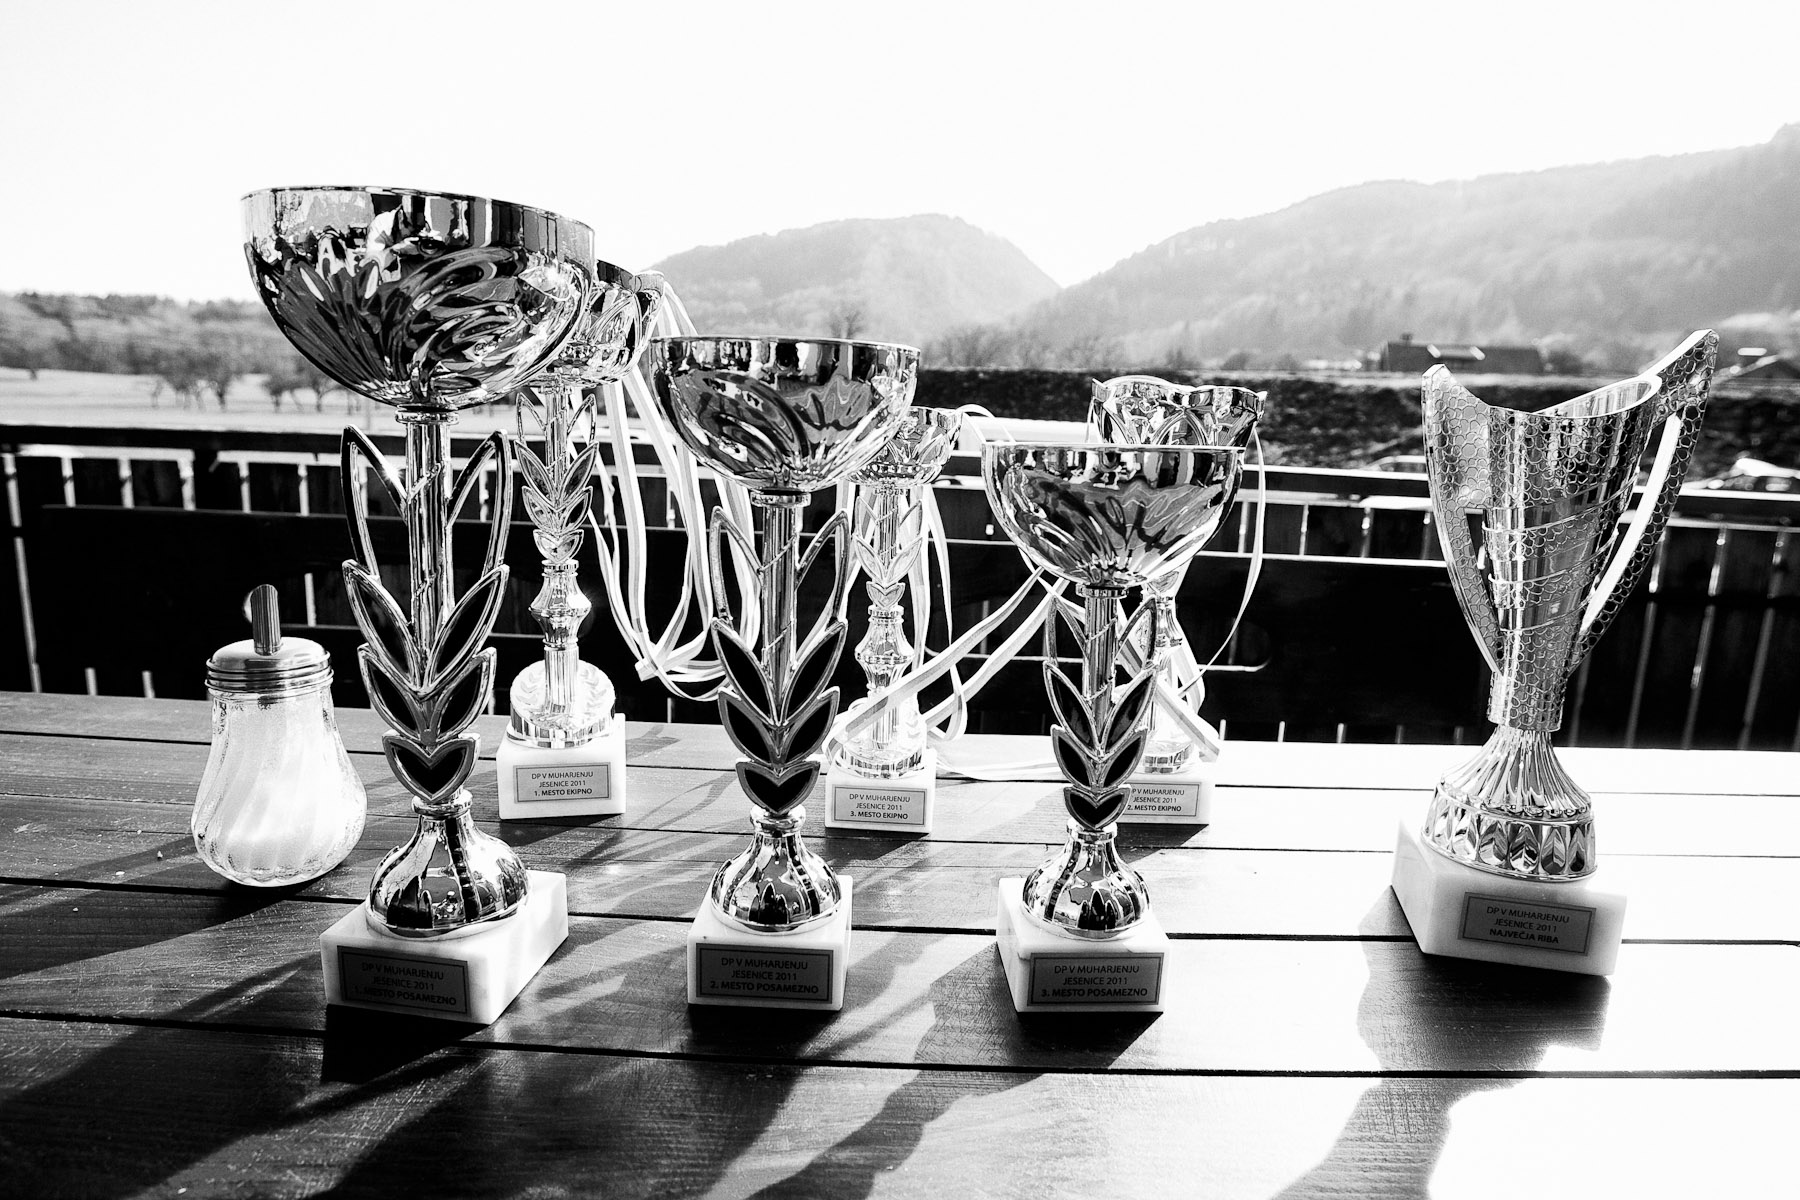 Trophies wait on a table at a restaurant terrace where the award ceremony of the National Fly Fishing Championship competition in Jesenice, Slovenia, took place on April 3, 2011.